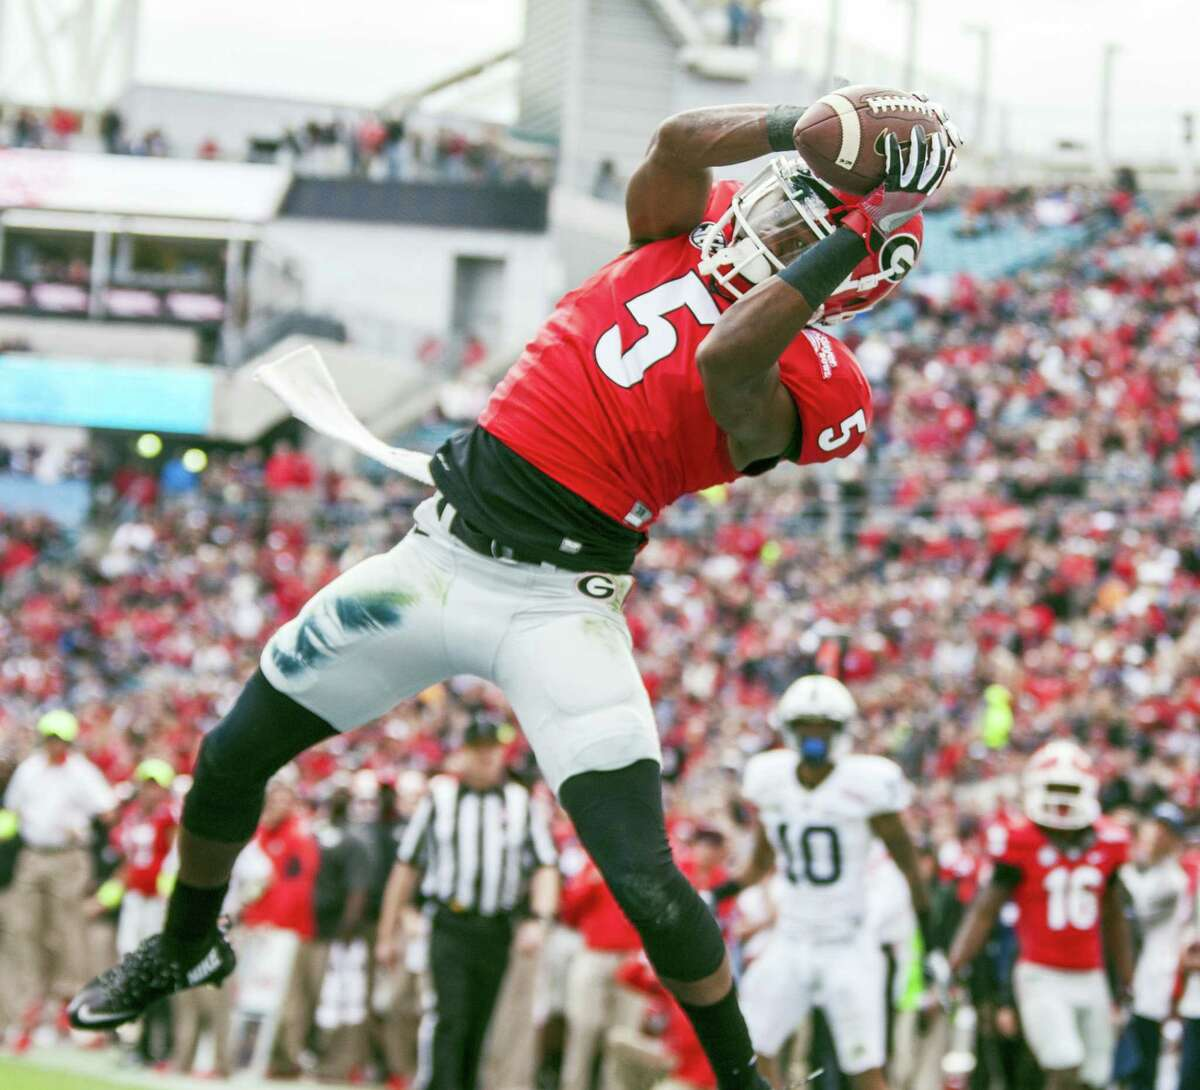 Georgia wide receiver Terry Godwin catches a touchdown during the first half of the TaxSlayer Bowl against Penn State on Saturday in Jacksonville, Fla.